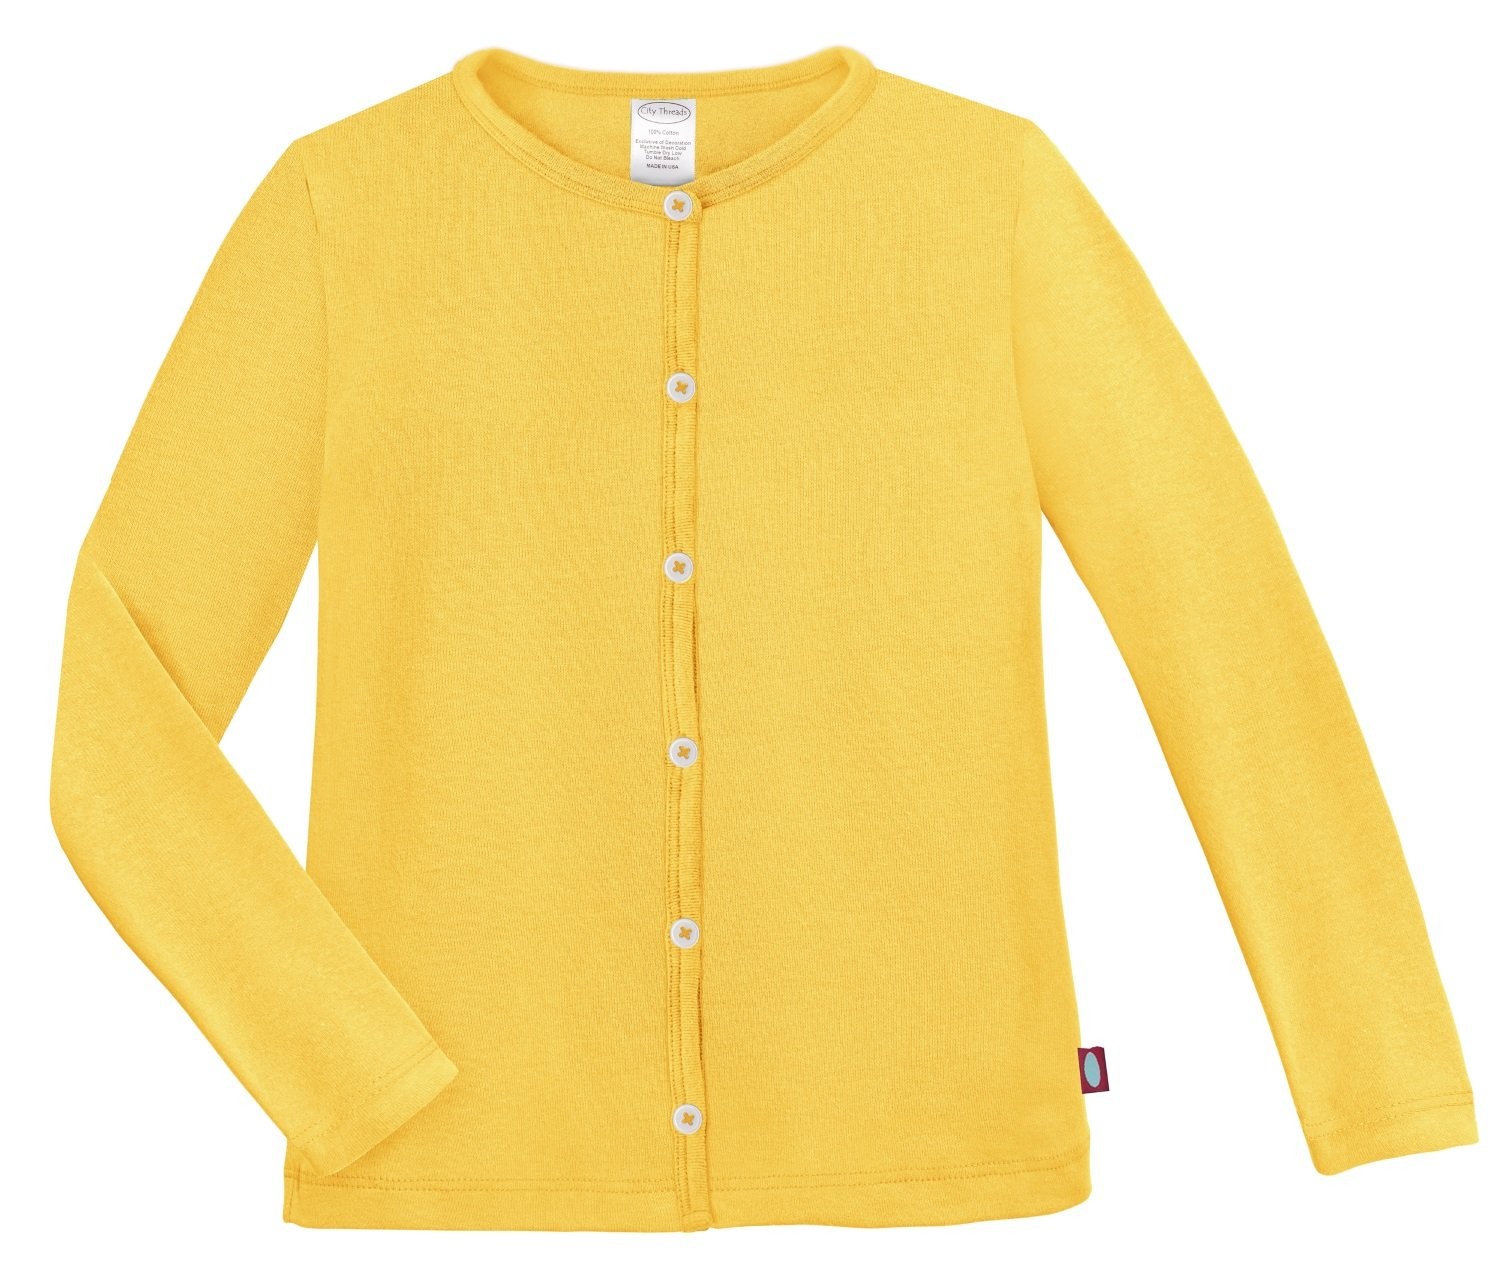 City Threads Girls Cardigan Top Button Down Sweater Layering School Play For Sensitive Skin SPD Sensory Friendly, Yellow, 10